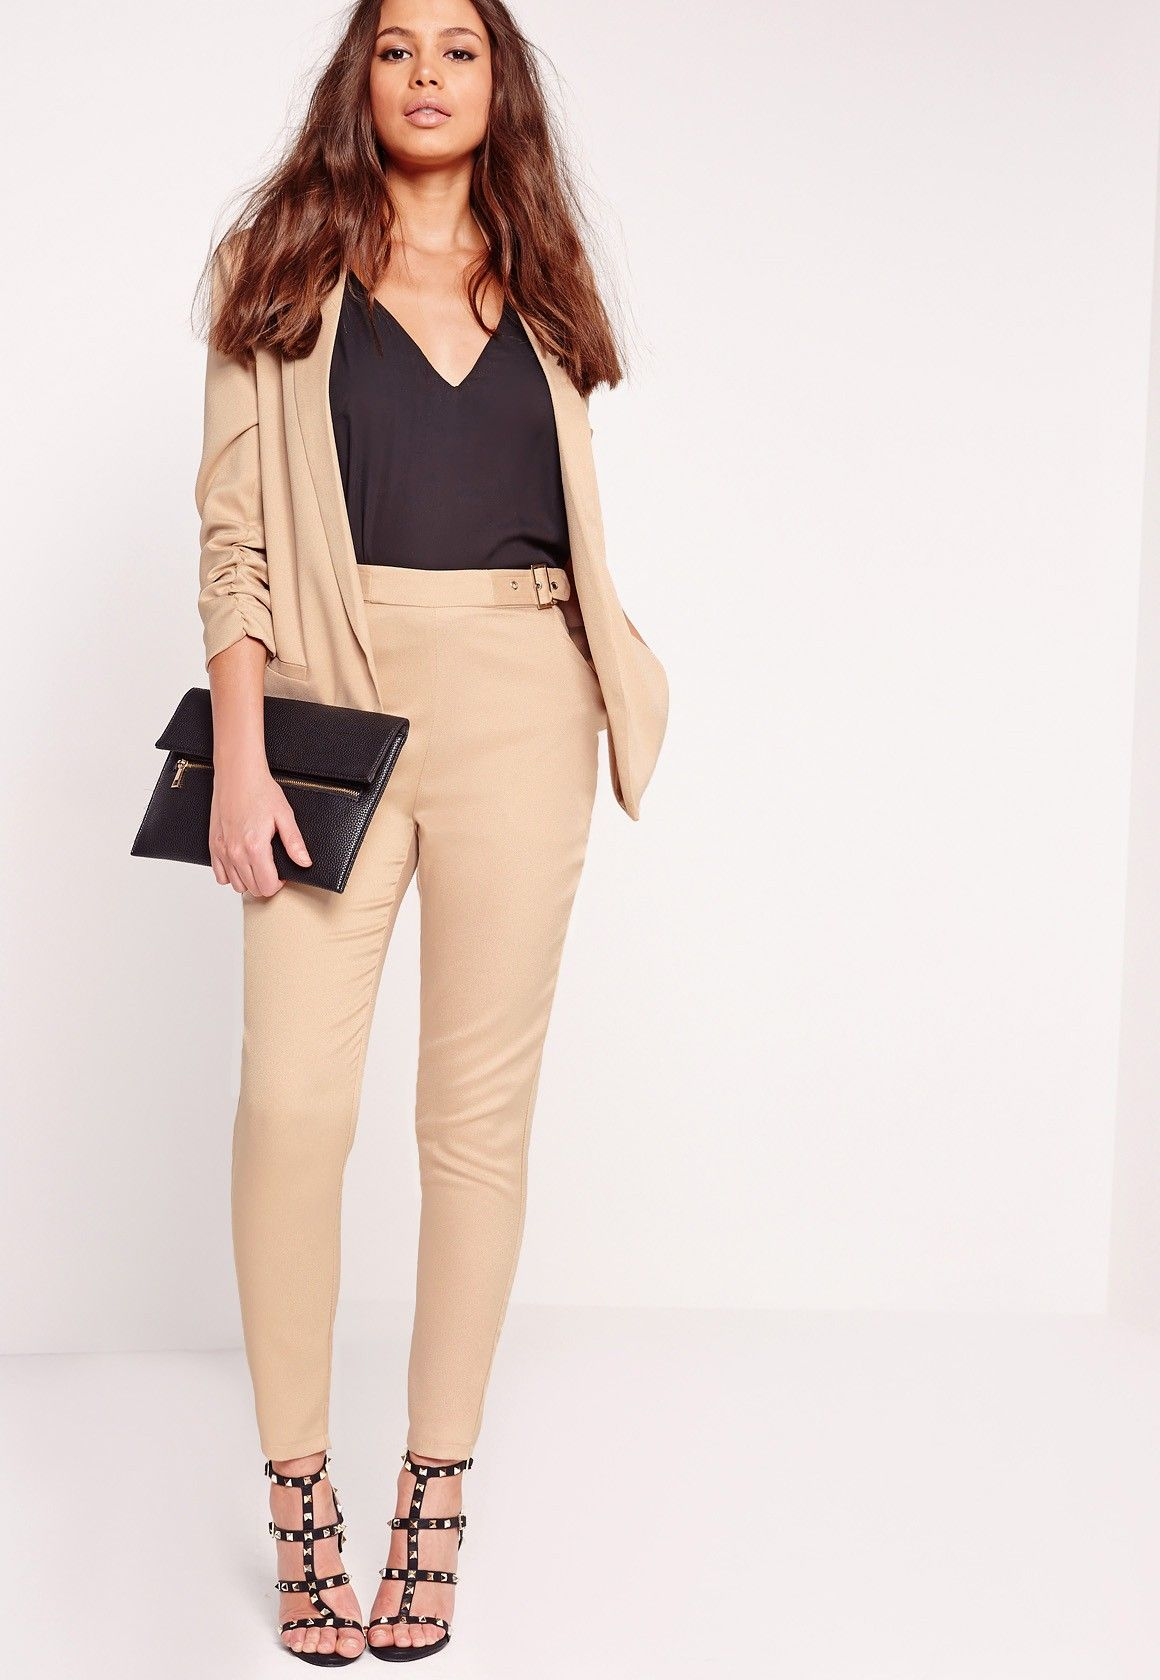 33521eca2ba ... Women - Office   Work Outfits. Missguided - Buckle Detail Cigarette  Pants Nude